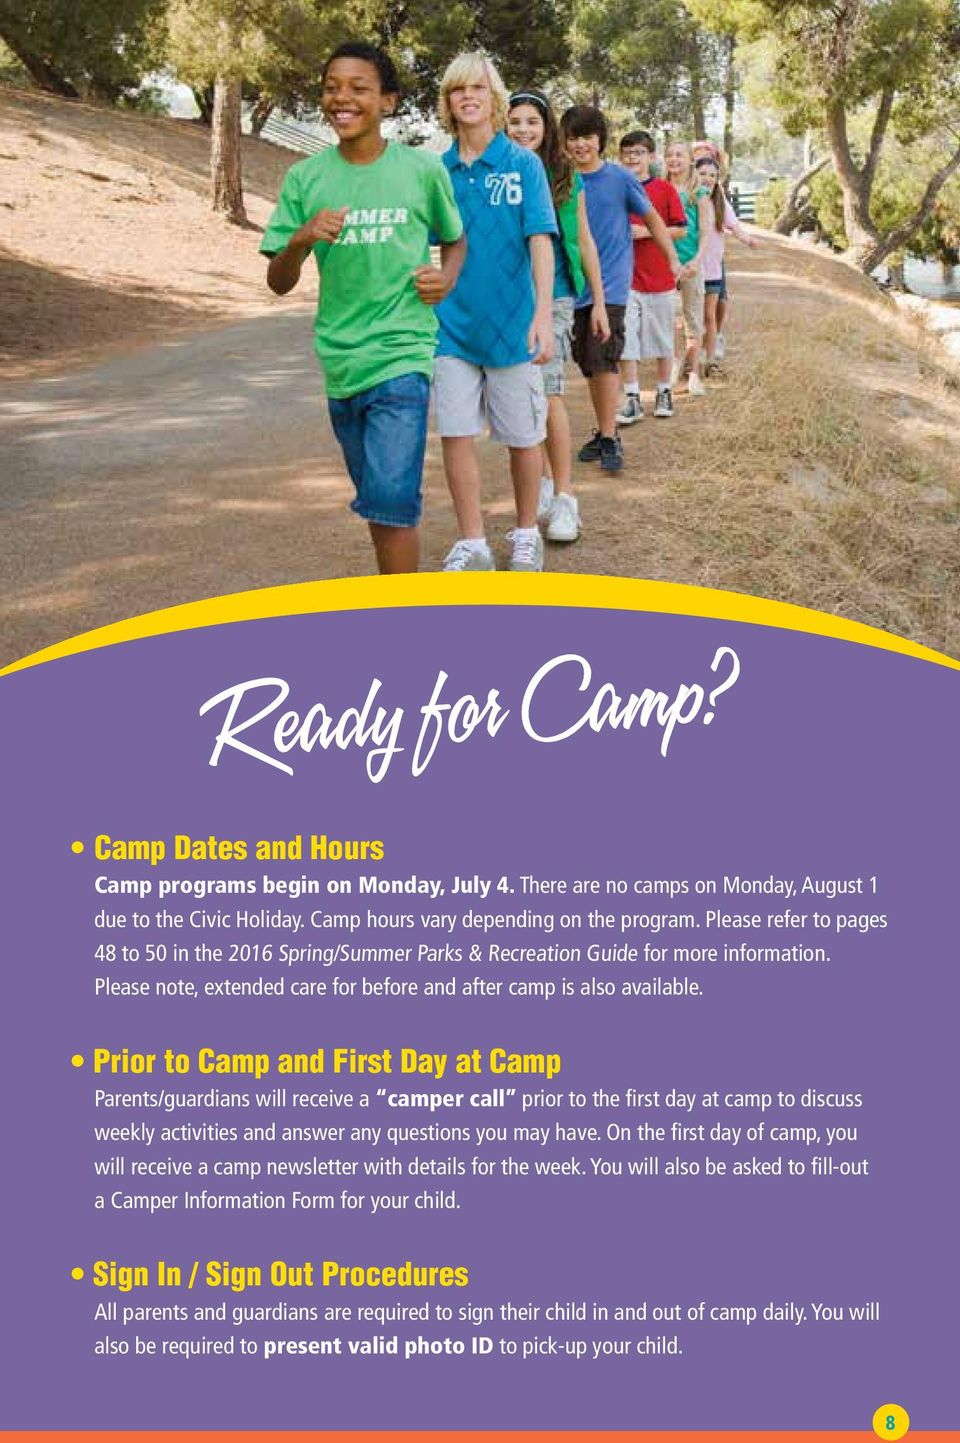 Prior to Camp and First Day at Camp Parents/guardians will receive a camper call prior to the first day at camp to discuss weekly activities and answer any questions you may have.